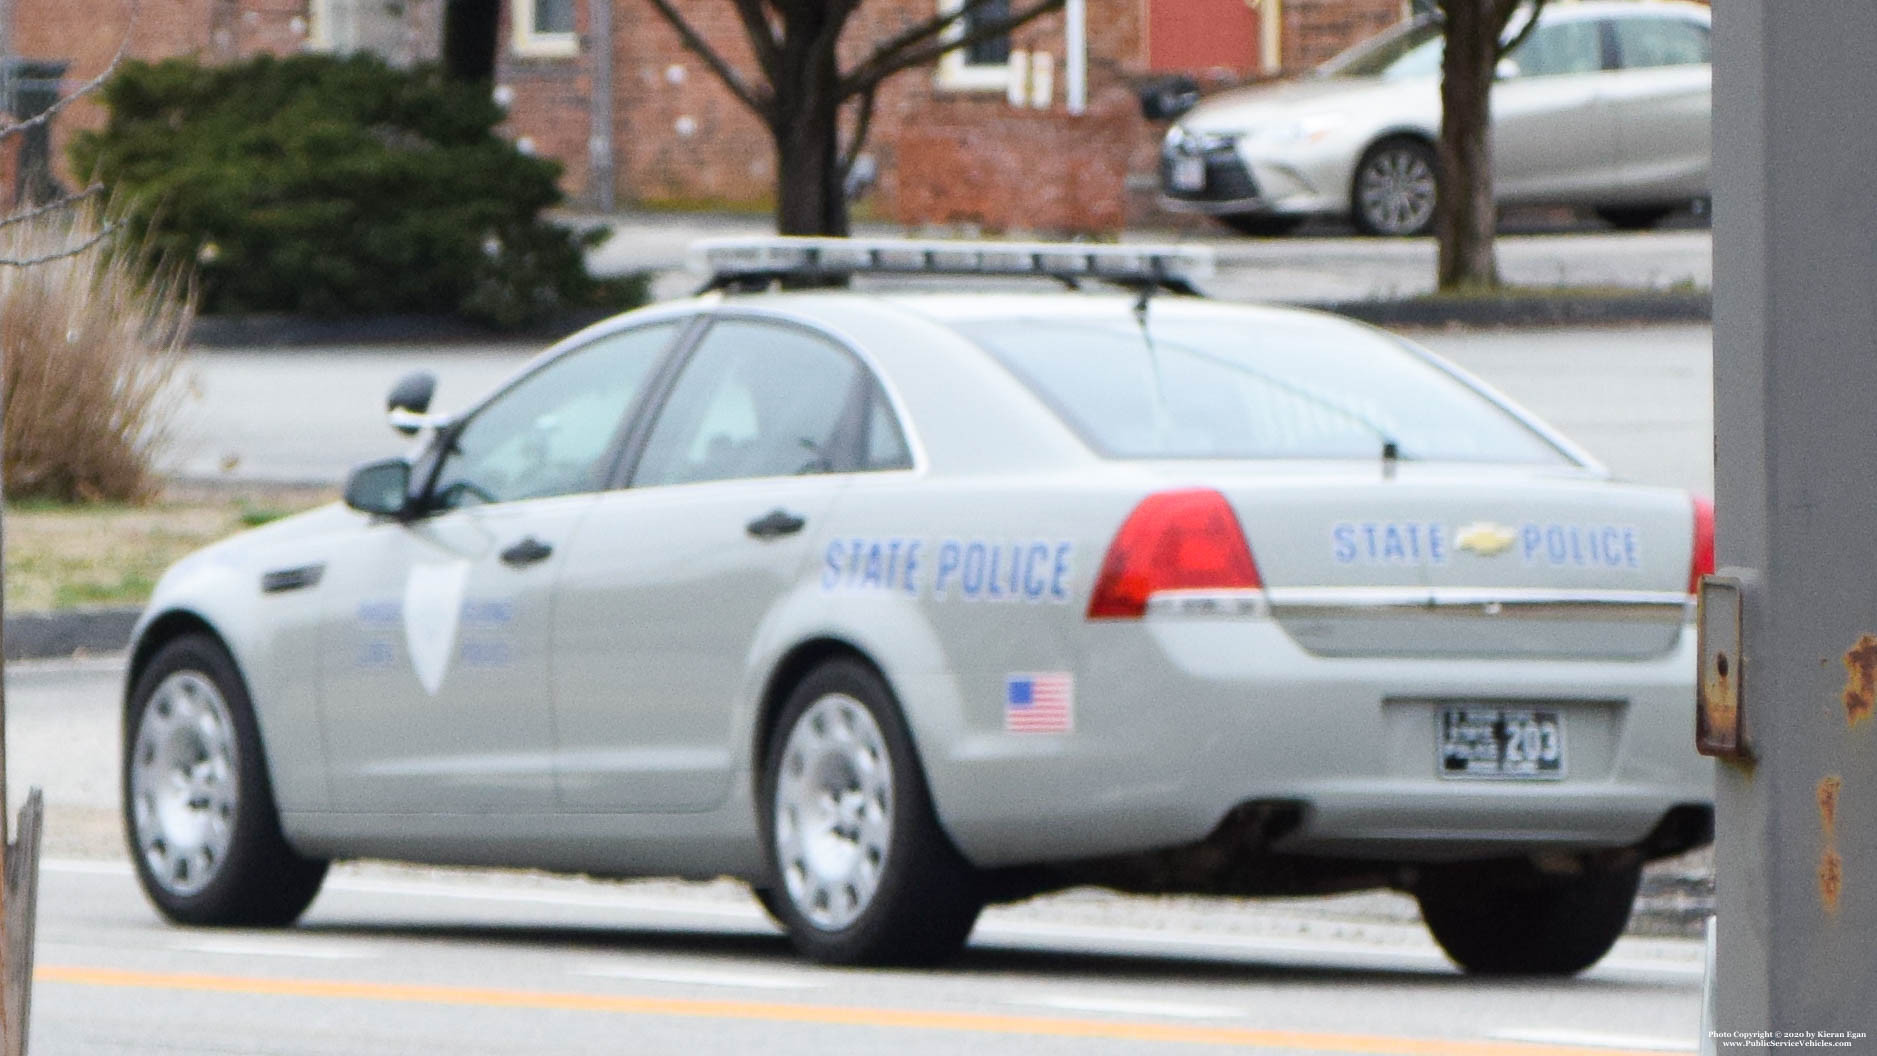 A photo  of Rhode Island State Police             Cruiser 203, a 2013 Chevrolet Caprice             taken by Kieran Egan